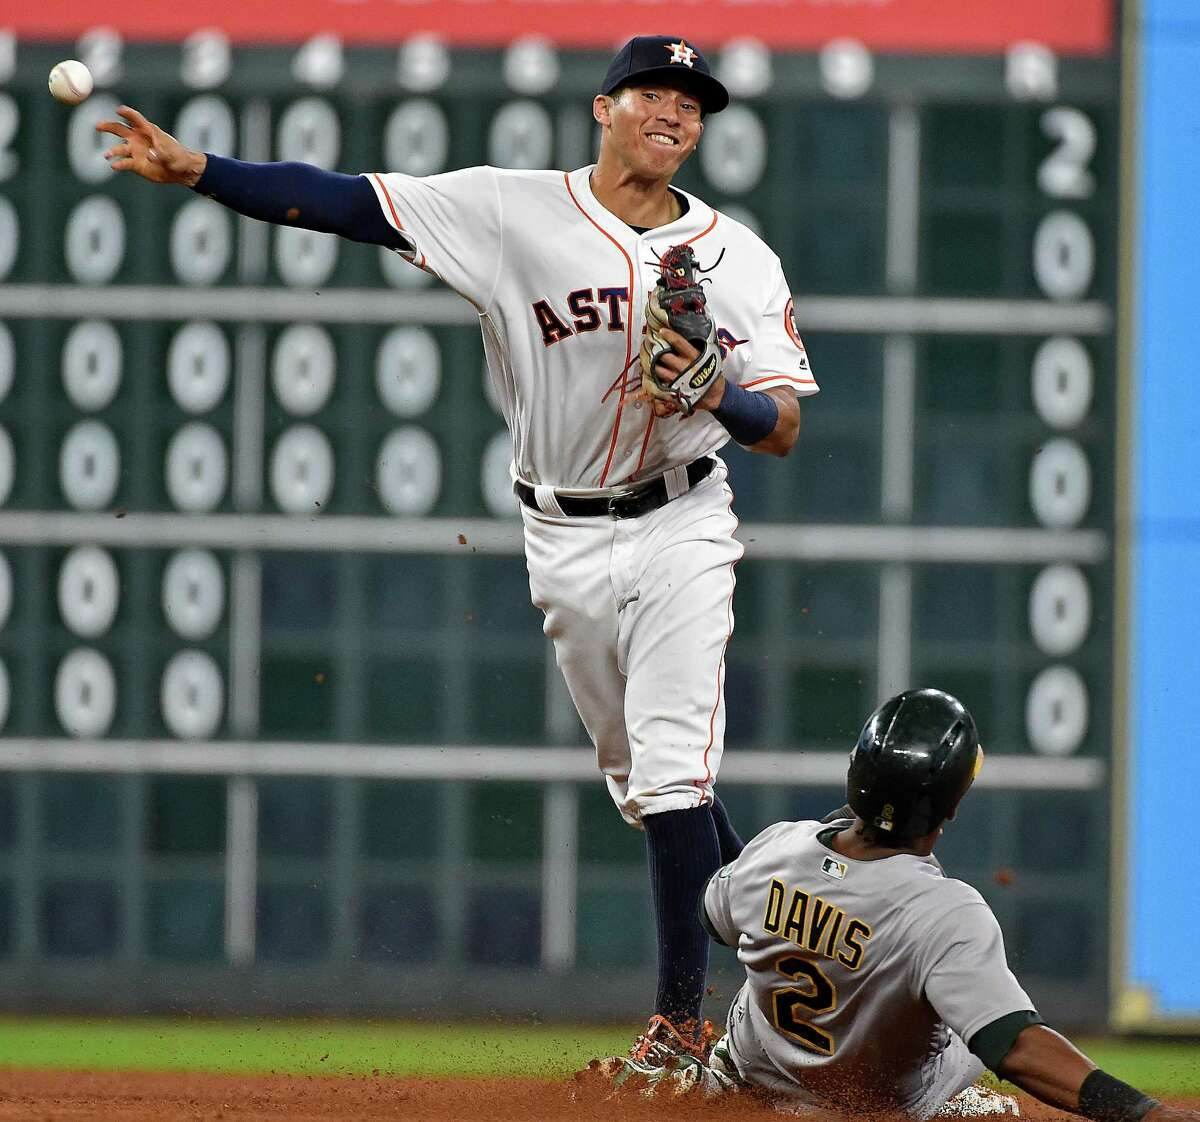 Houston Astros shortstop Carlos Correa, left, turns a double play over Oakland Athletics' Khris Davis to end the sixth inning of a baseball game, Monday, Aug. 29, 2016, in Houston. (AP Photo/Eric Christian Smith)